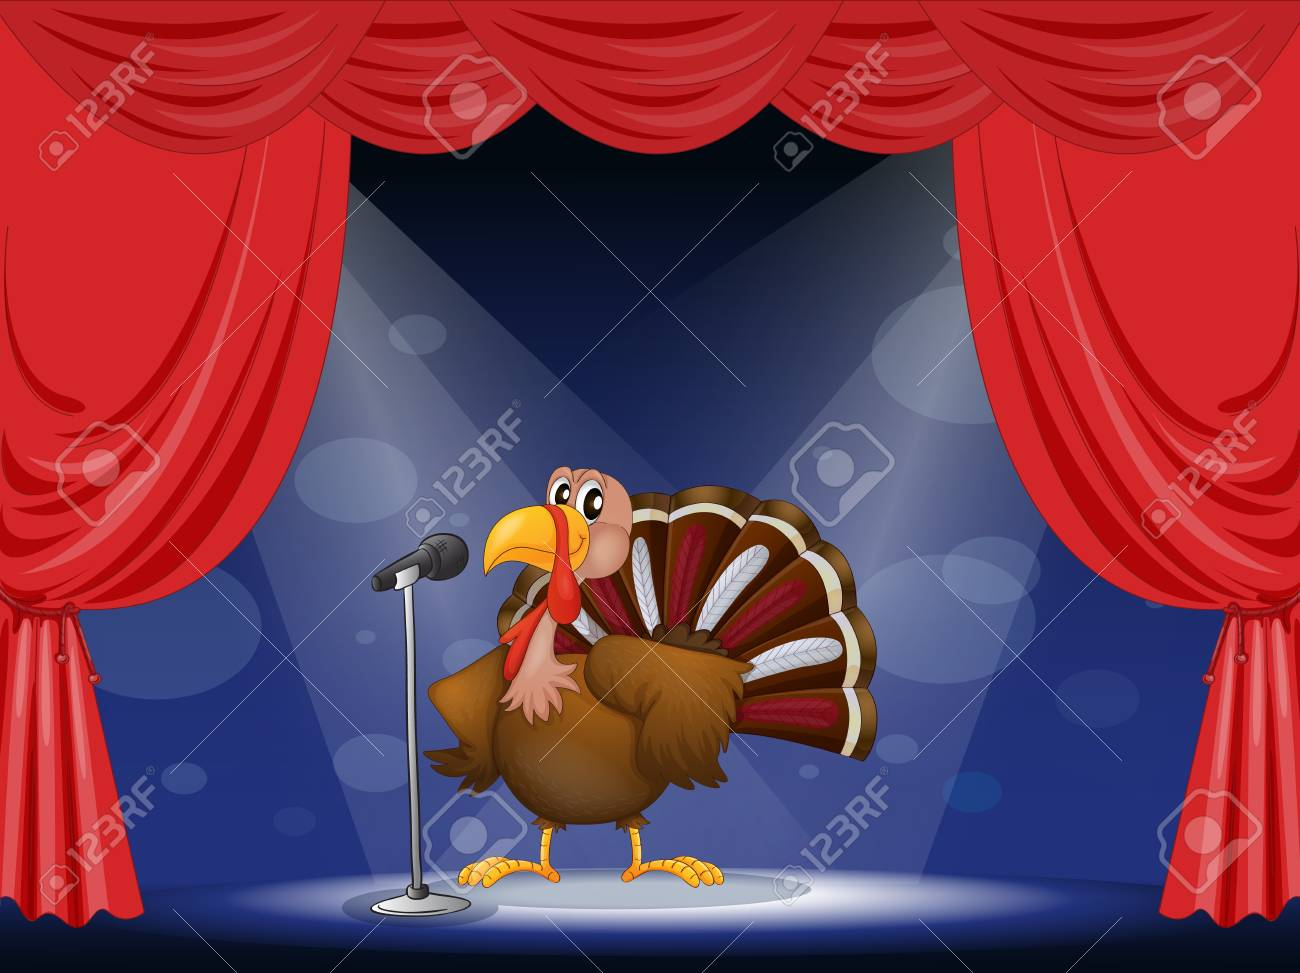 Illustration of a turkey in the center of a stage Stock Vector - 17524744